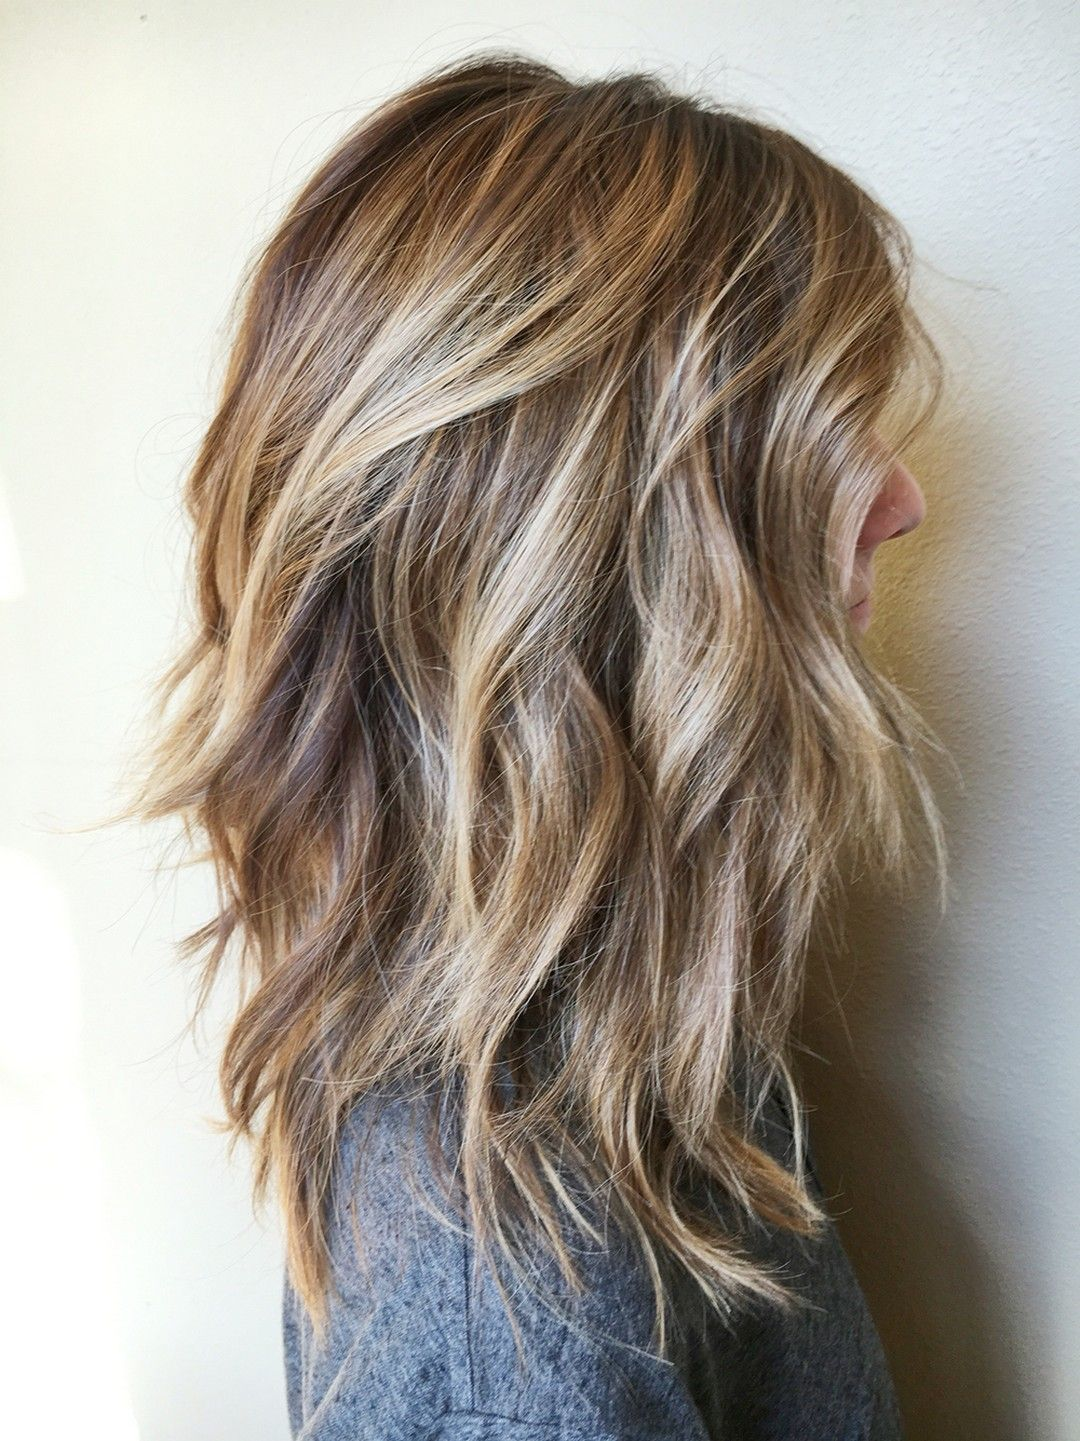 Nice new trends layered hair cuts hairstyle pinterest